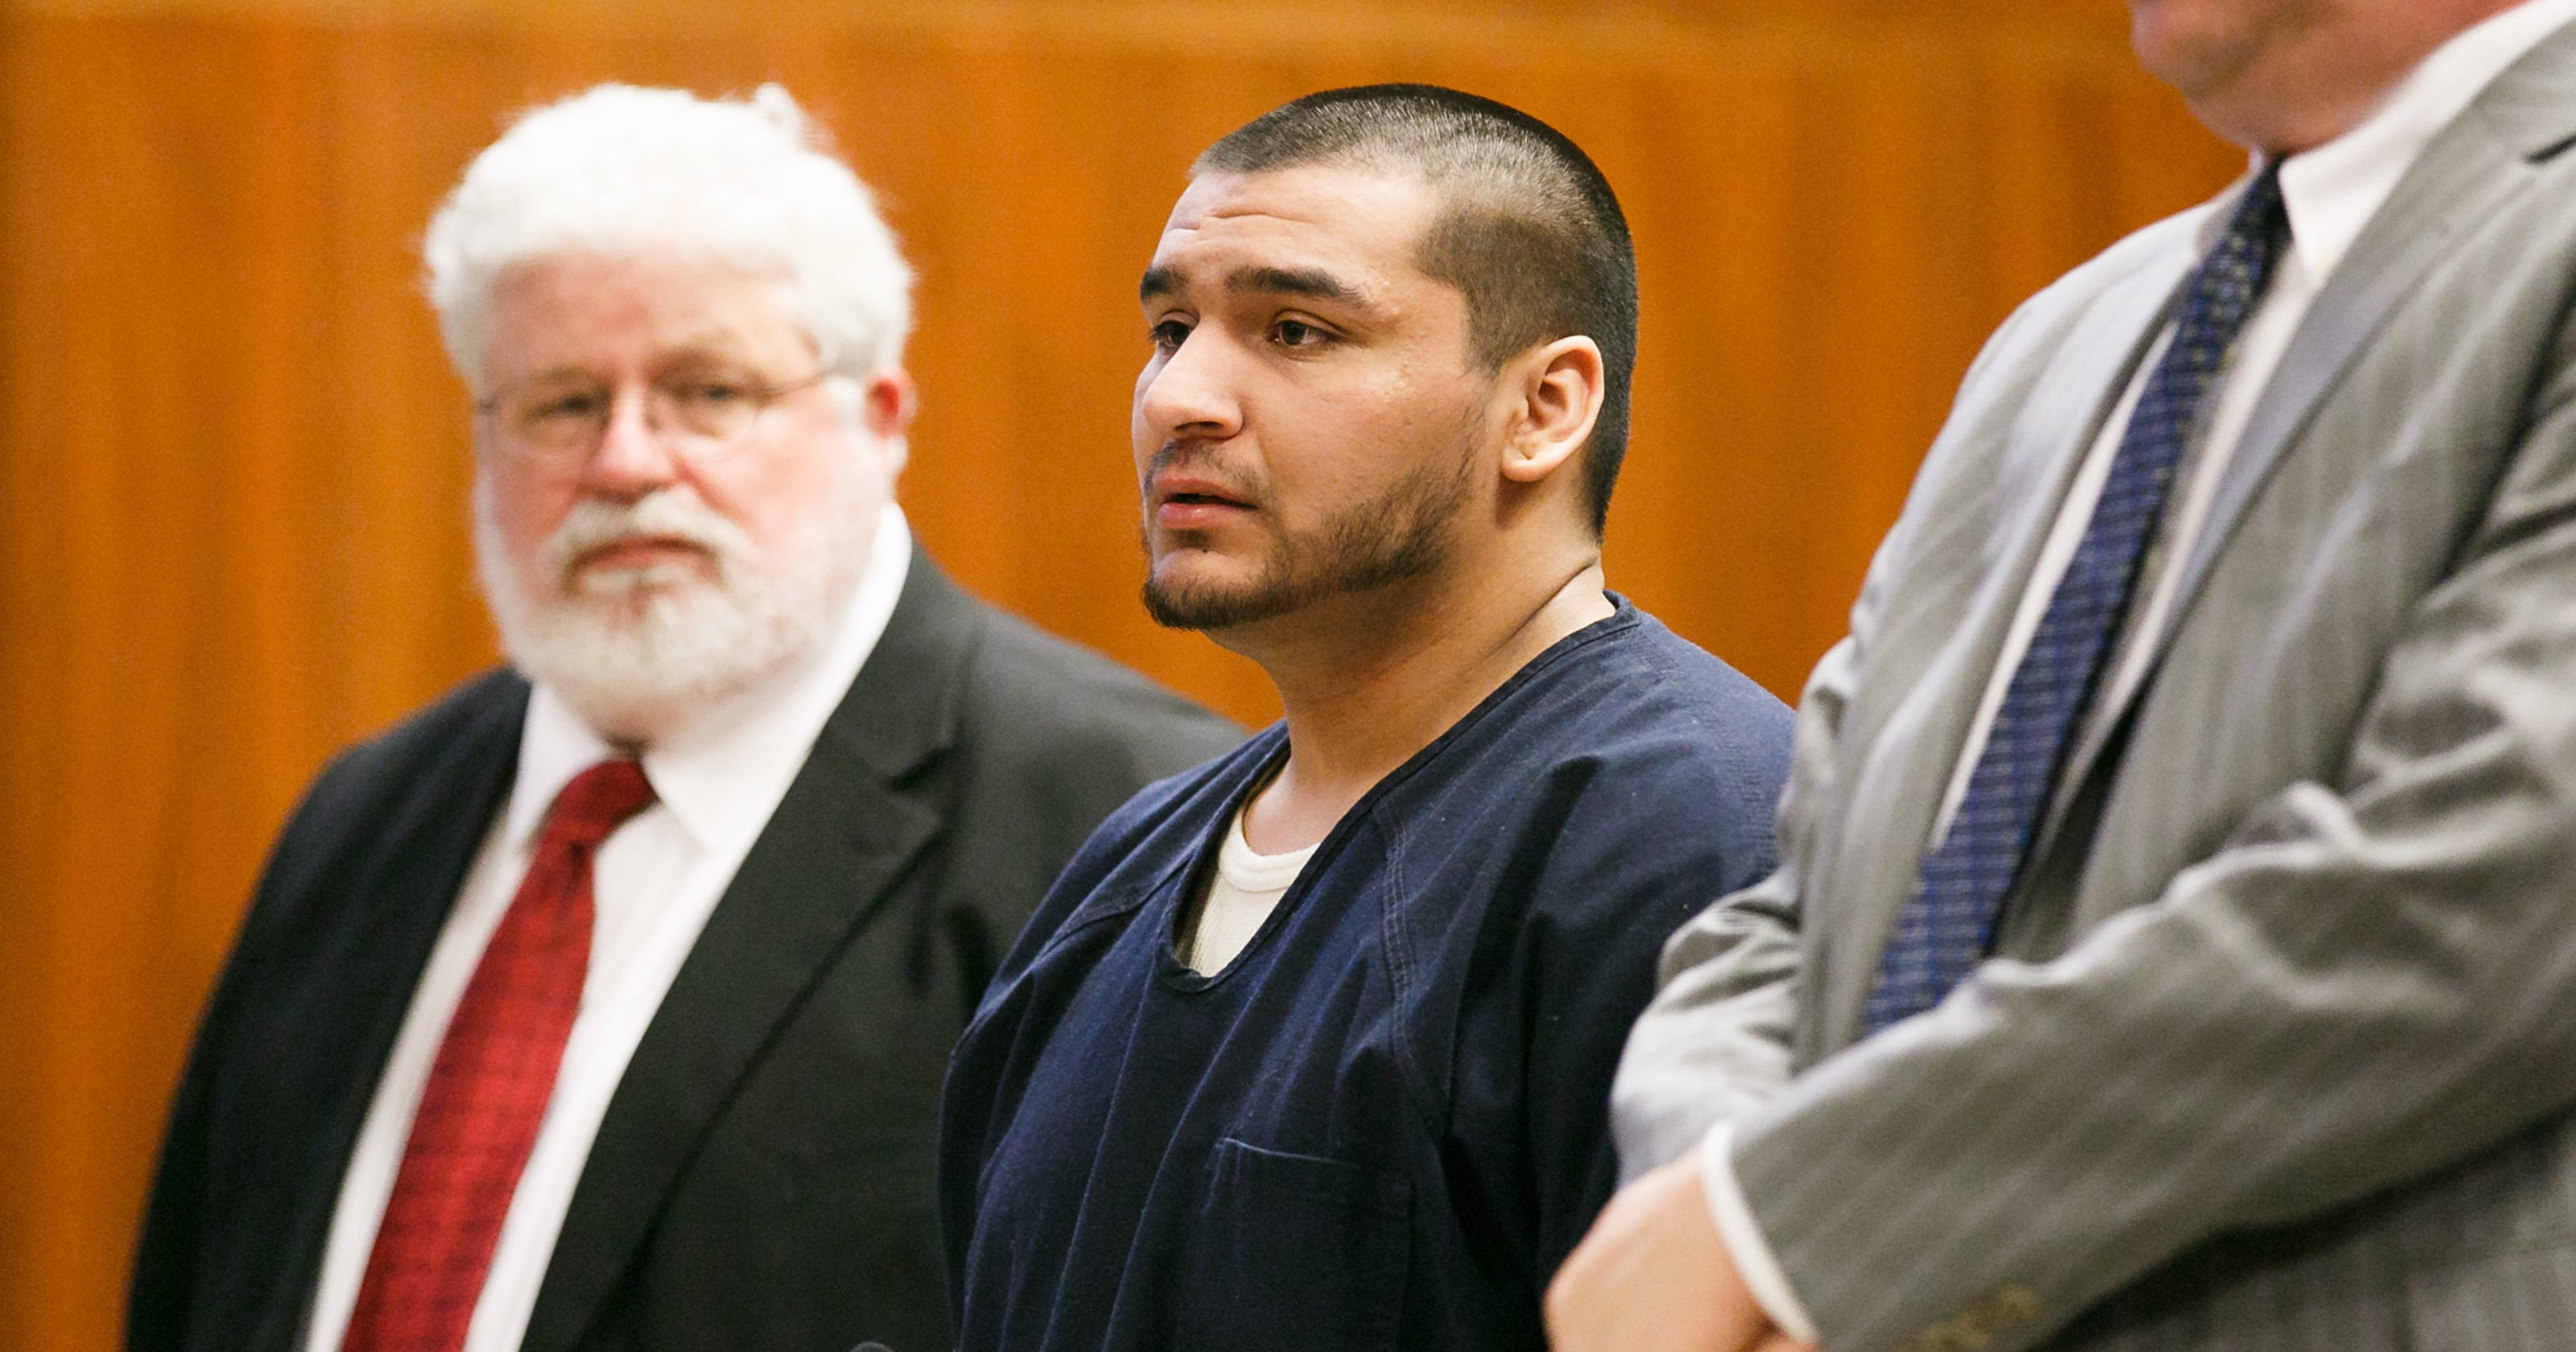 salem man sentenced to life in prison for fatal drive by gang shooting